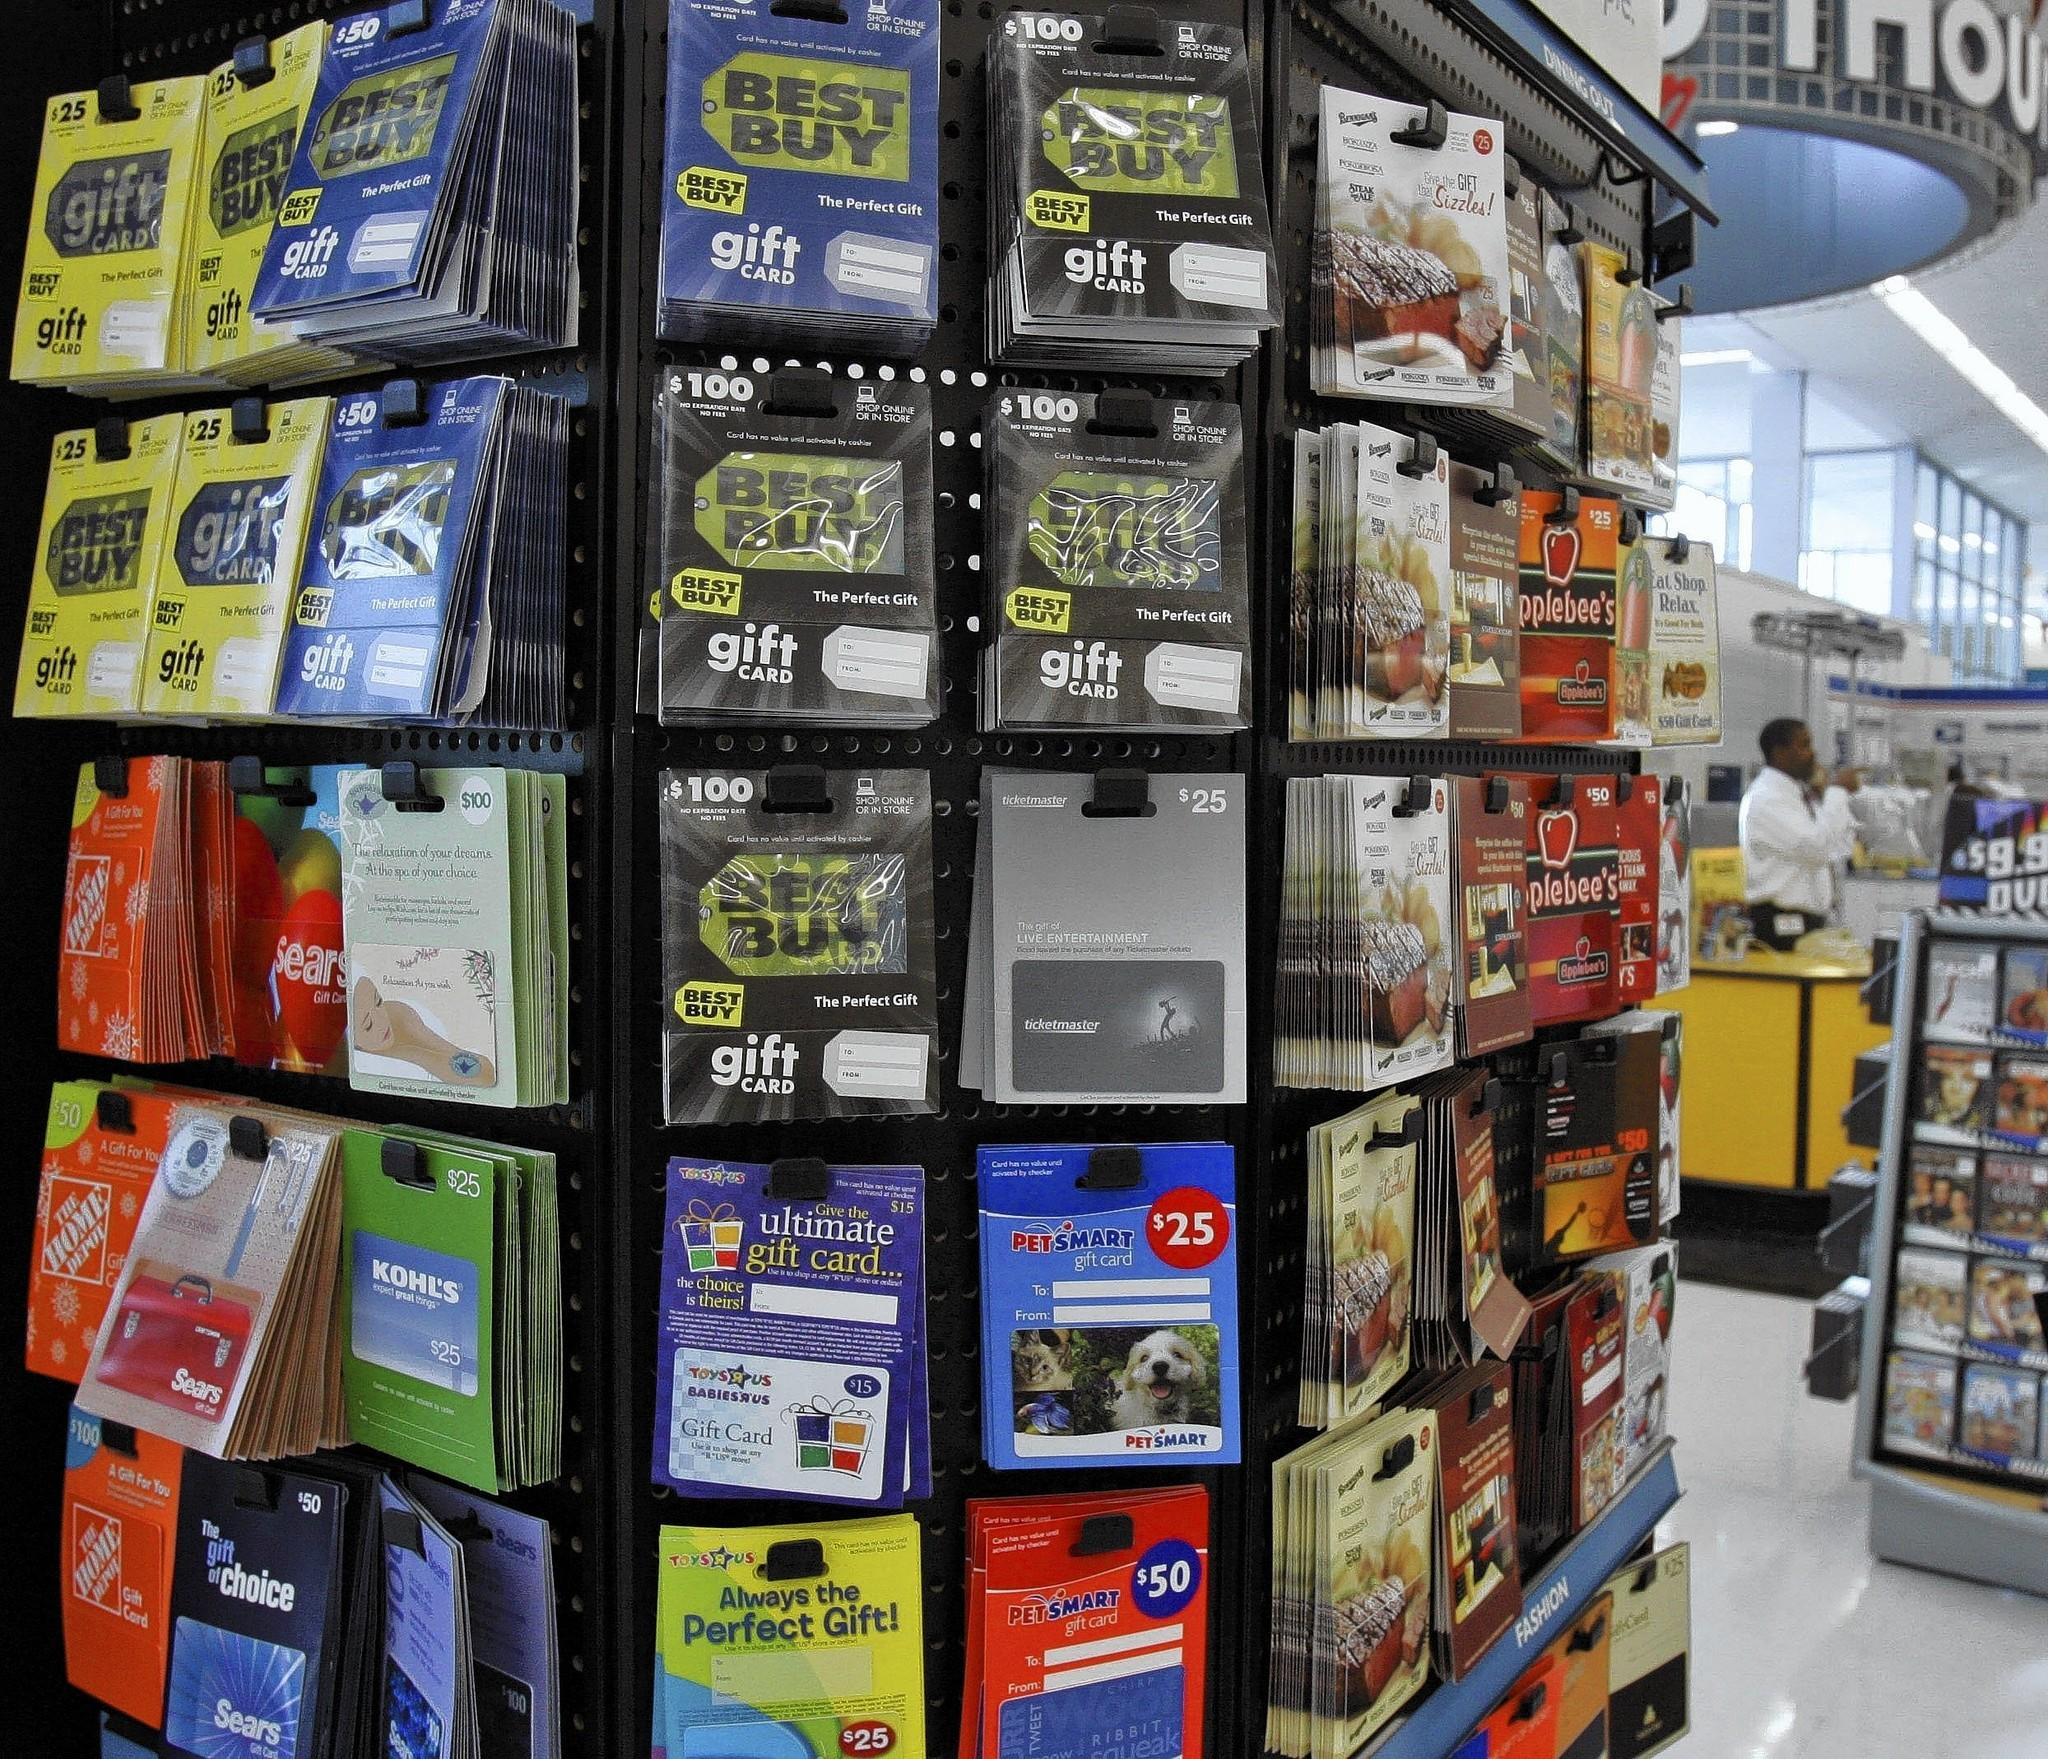 Get the most out of that gift card latimes total spending on gift cards this holiday season will reach about 30 billion the national kristyandbryce Choice Image